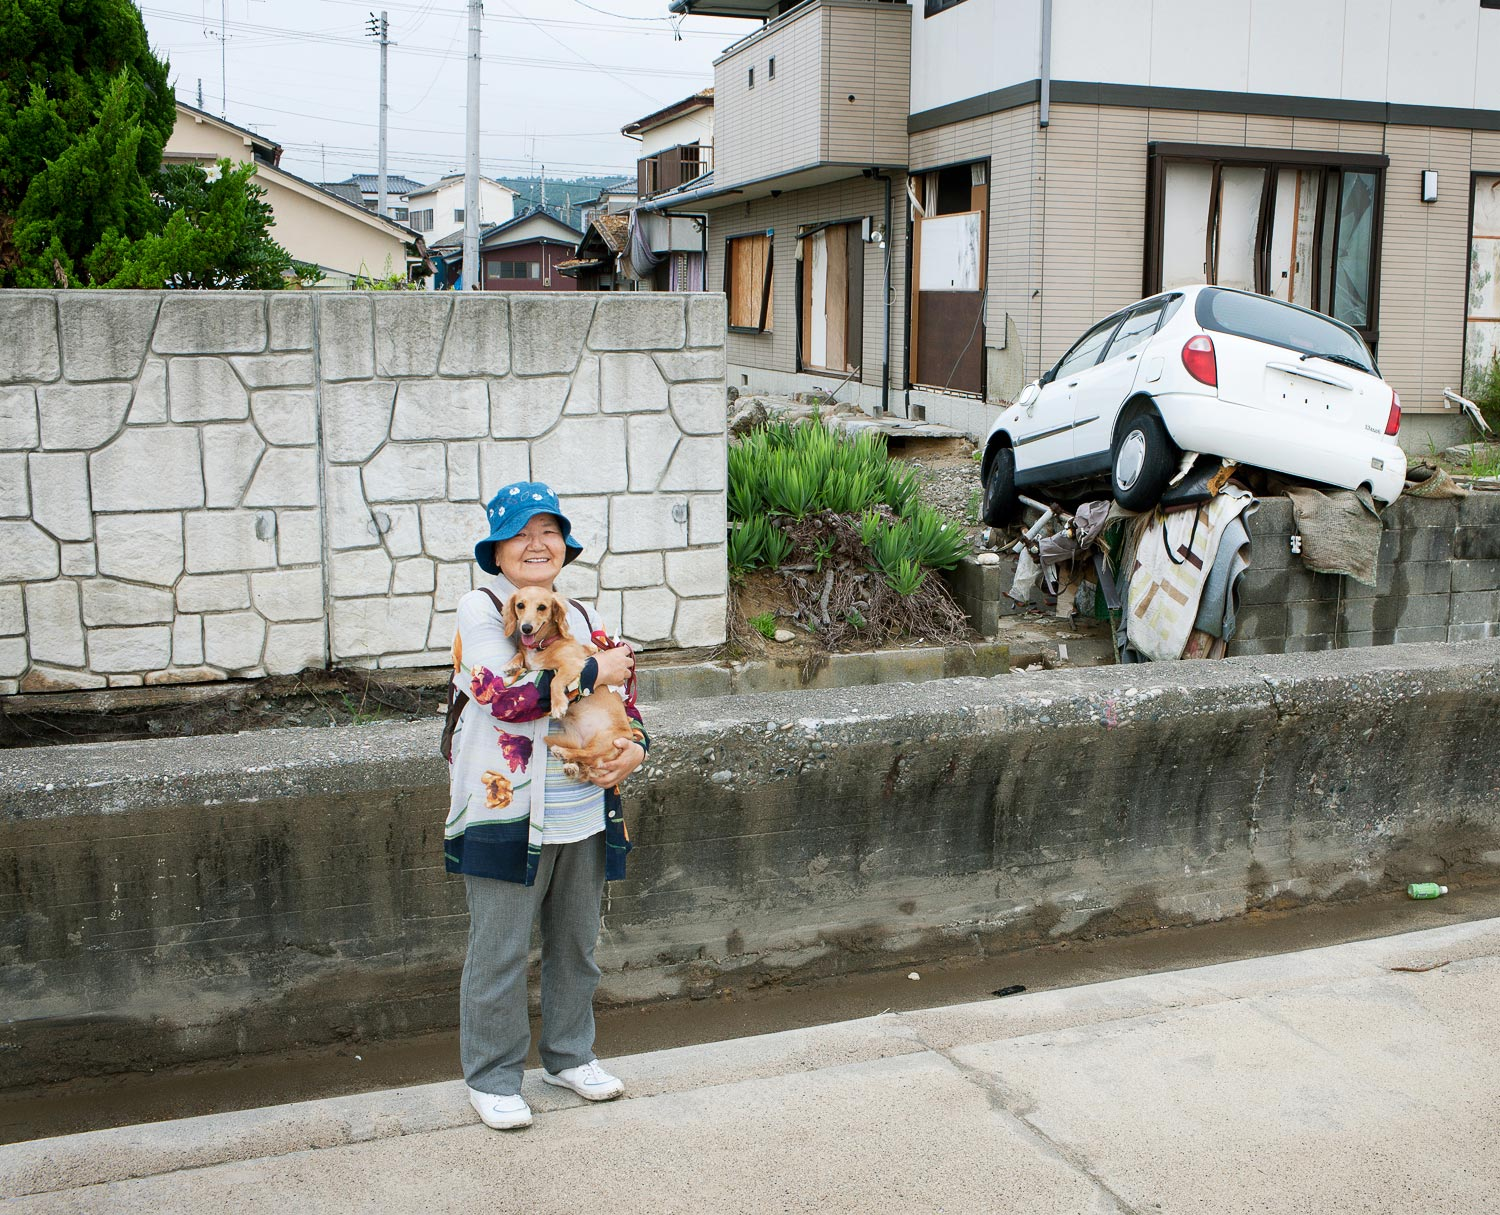 One of the few local people I ran into that morning in Hisanohama